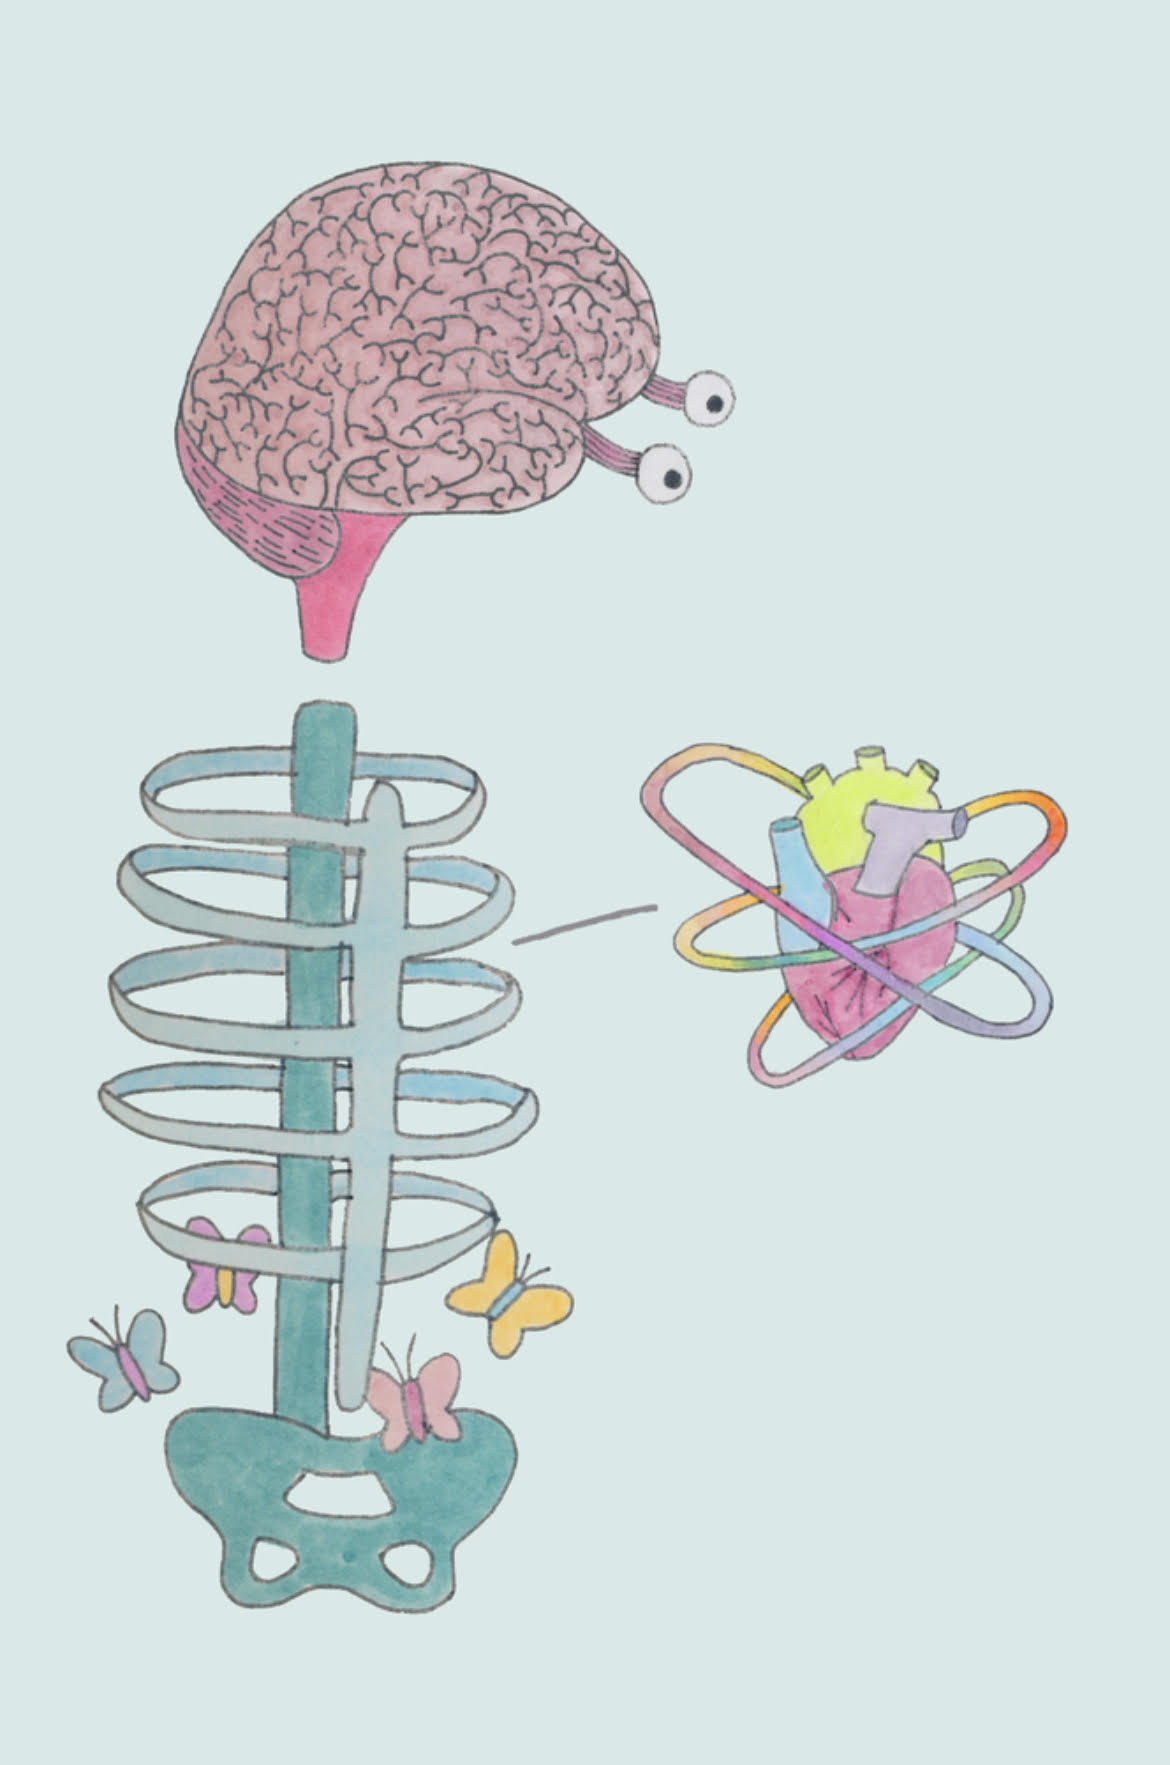 Illustration by Sadie Levine. Brain with eyeballs sits above a teal cartoon rib cage illustration filled with cartoon butterflies. To the right of the brain and rib cage is a neon drawing of a heart, rainbow lines surrounding it. The image's background is a pale robin's egg blue tone.